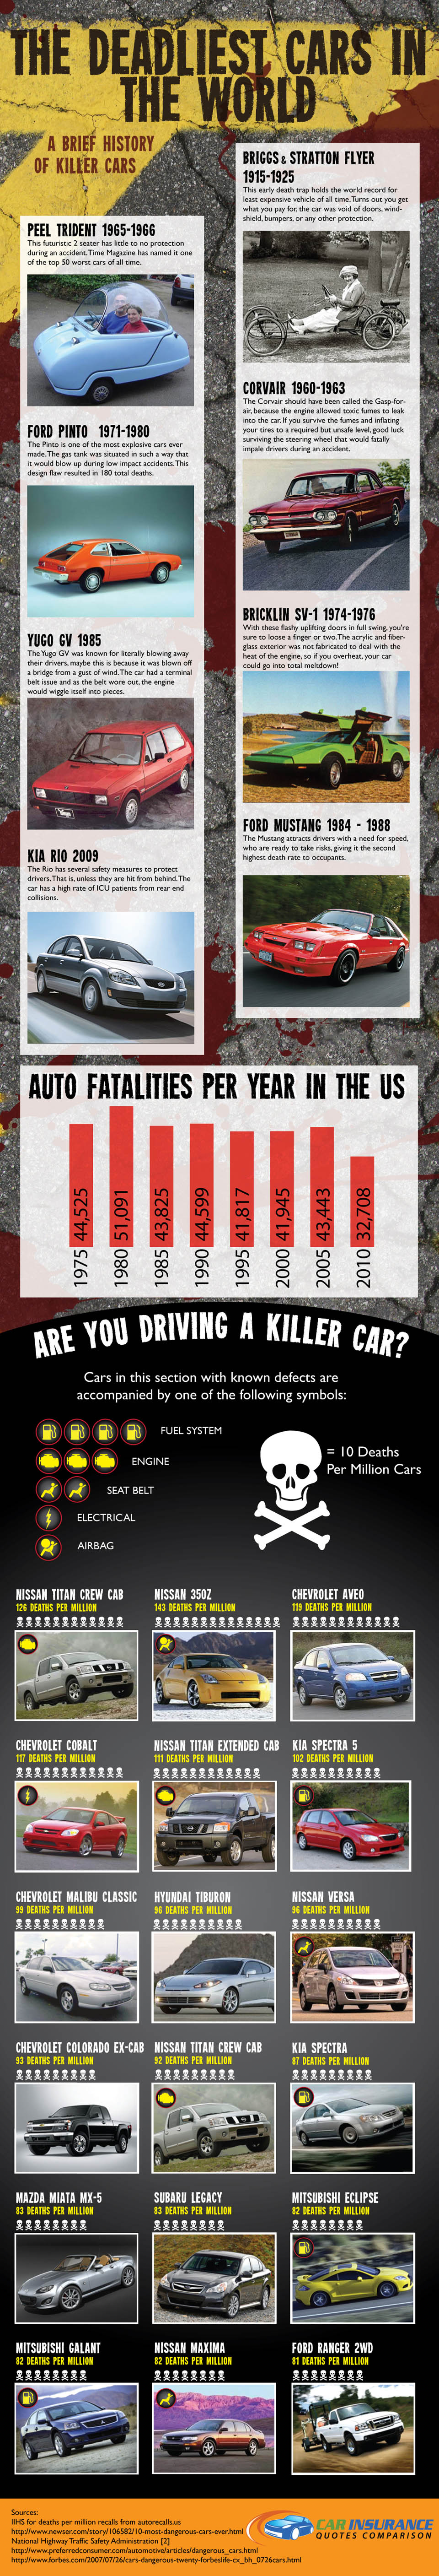 Deadliest Cars in the World (Infographic)